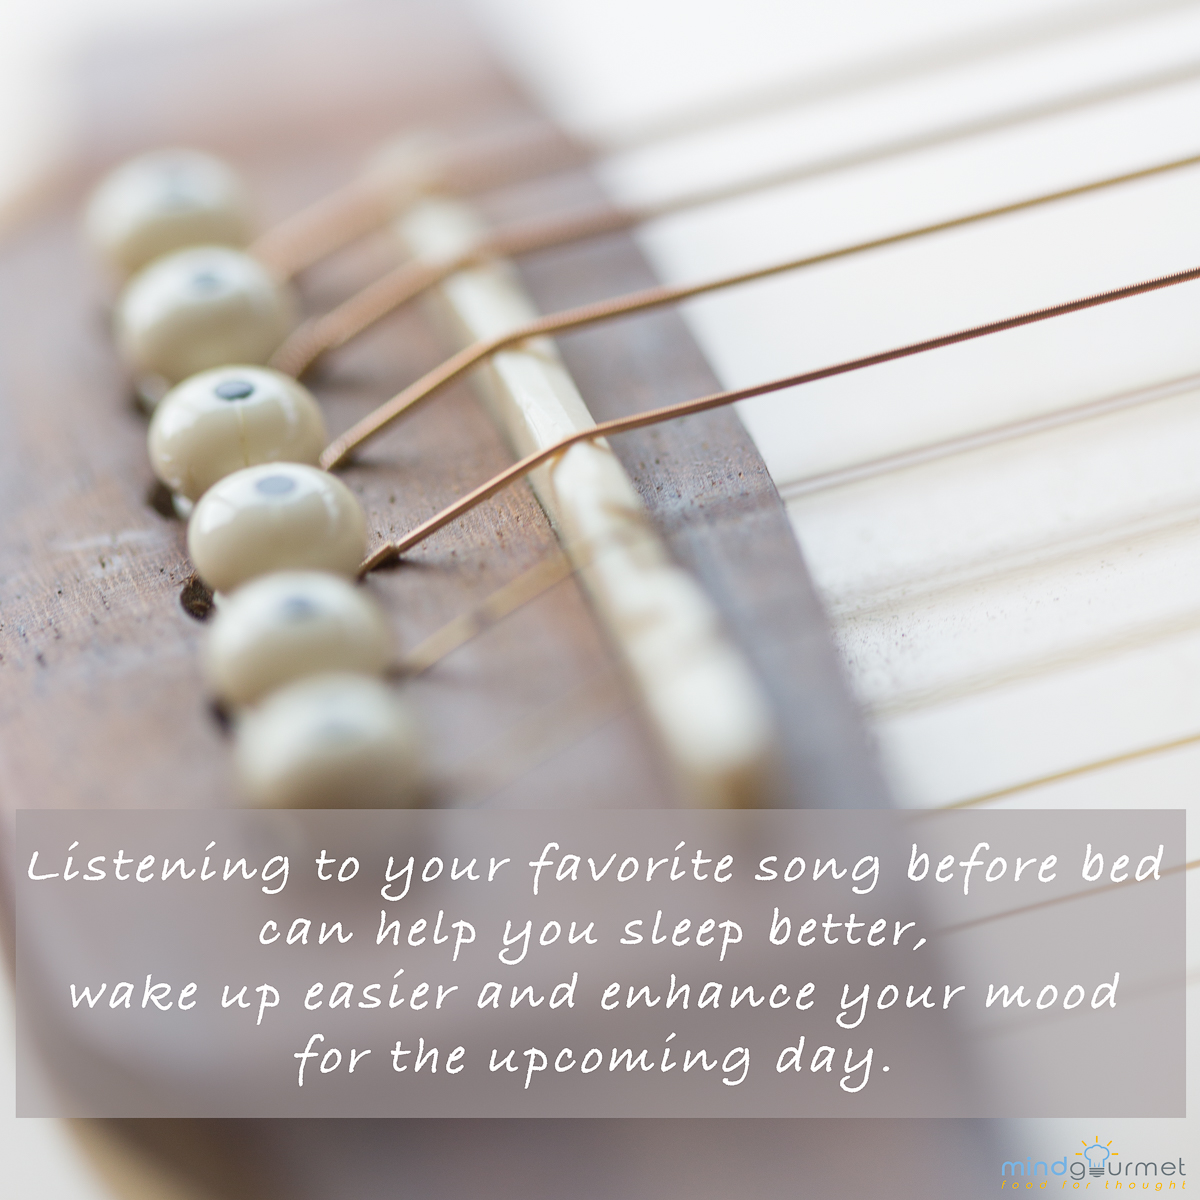 What is your favorite song?  #bed #song